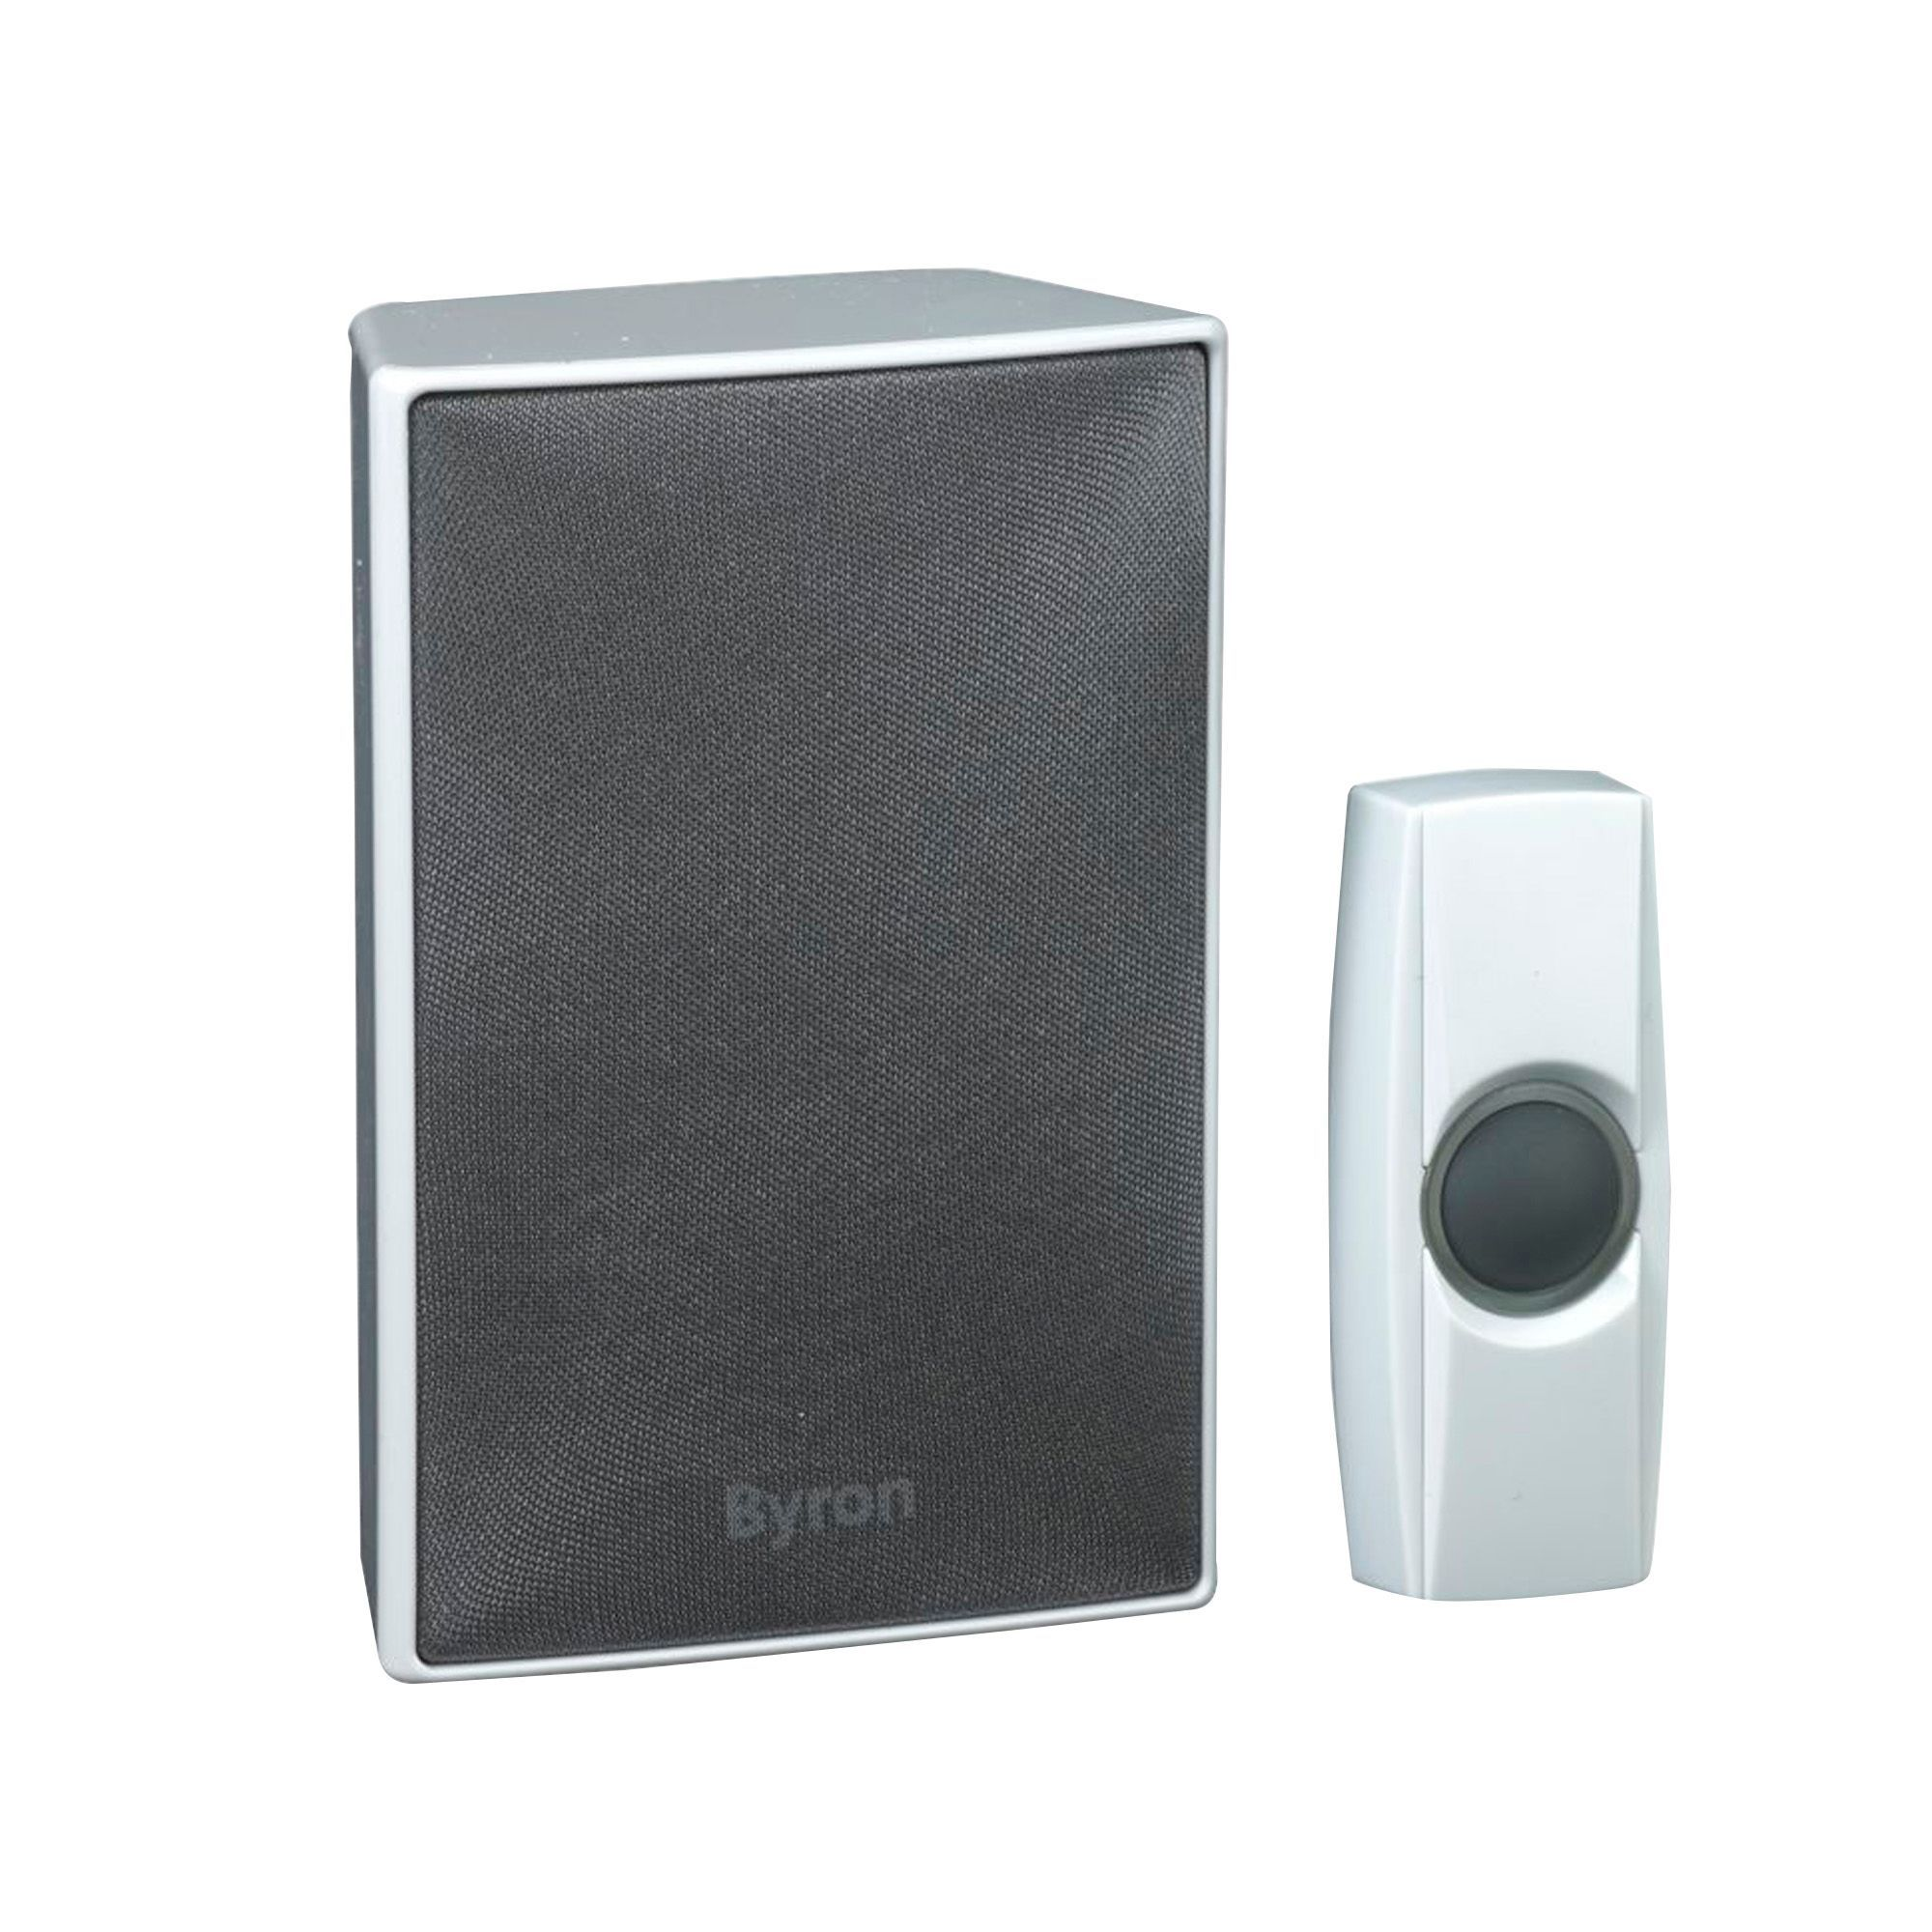 sc 1 st  Bu0026Q & Byron Wirefree White Portable Door Chime | Departments | DIY at Bu0026Q pezcame.com